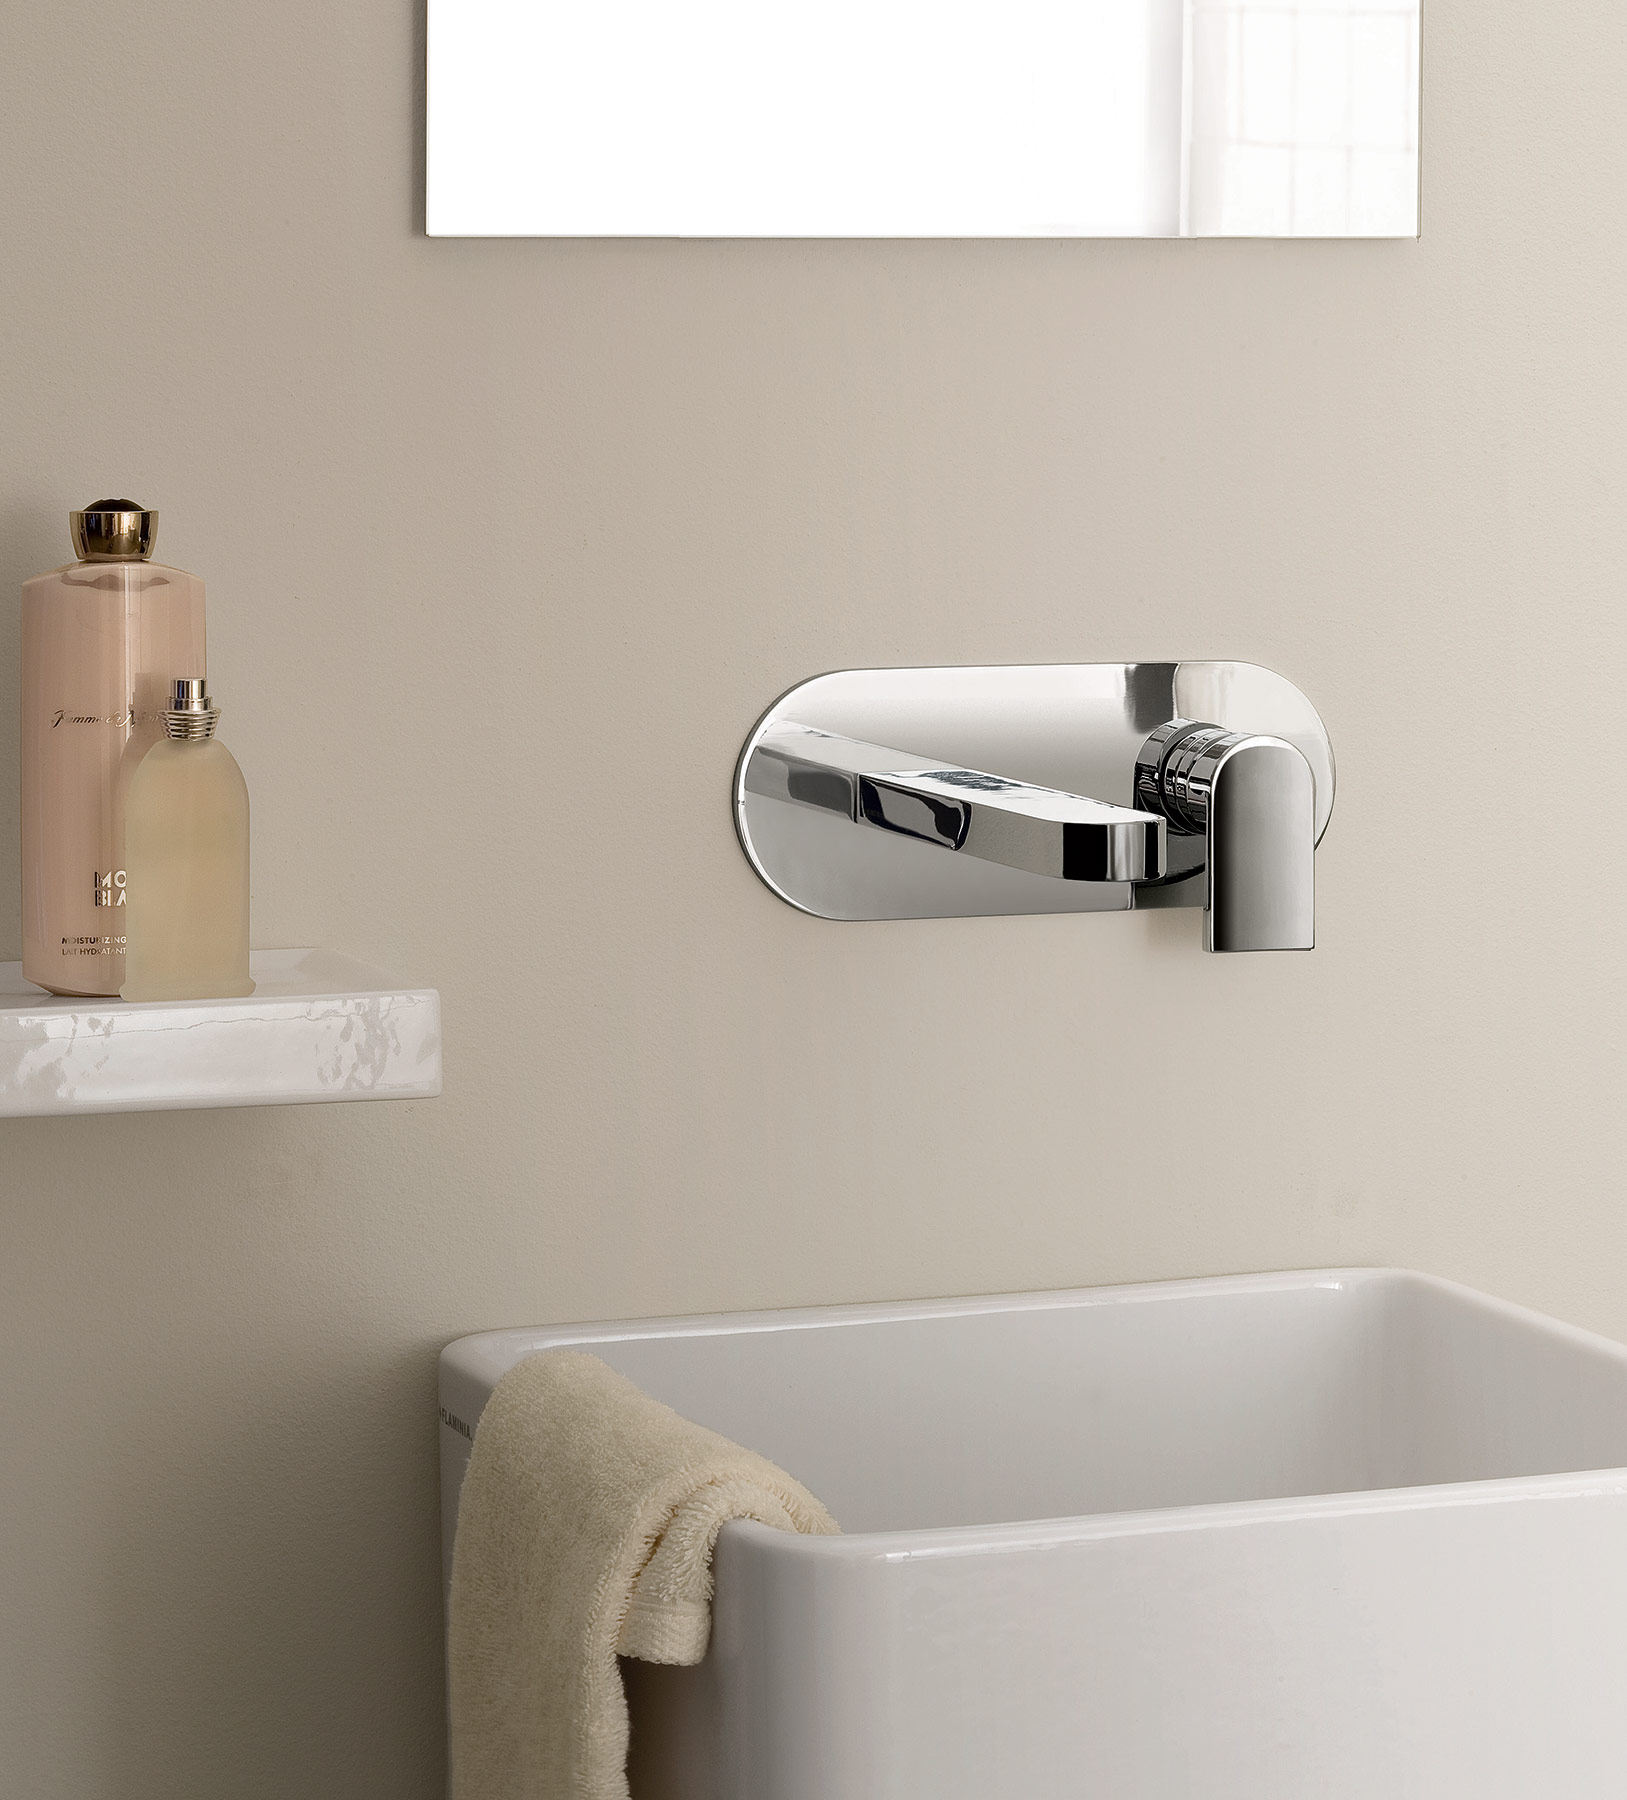 Transitional Mare Wall Mount Faucet